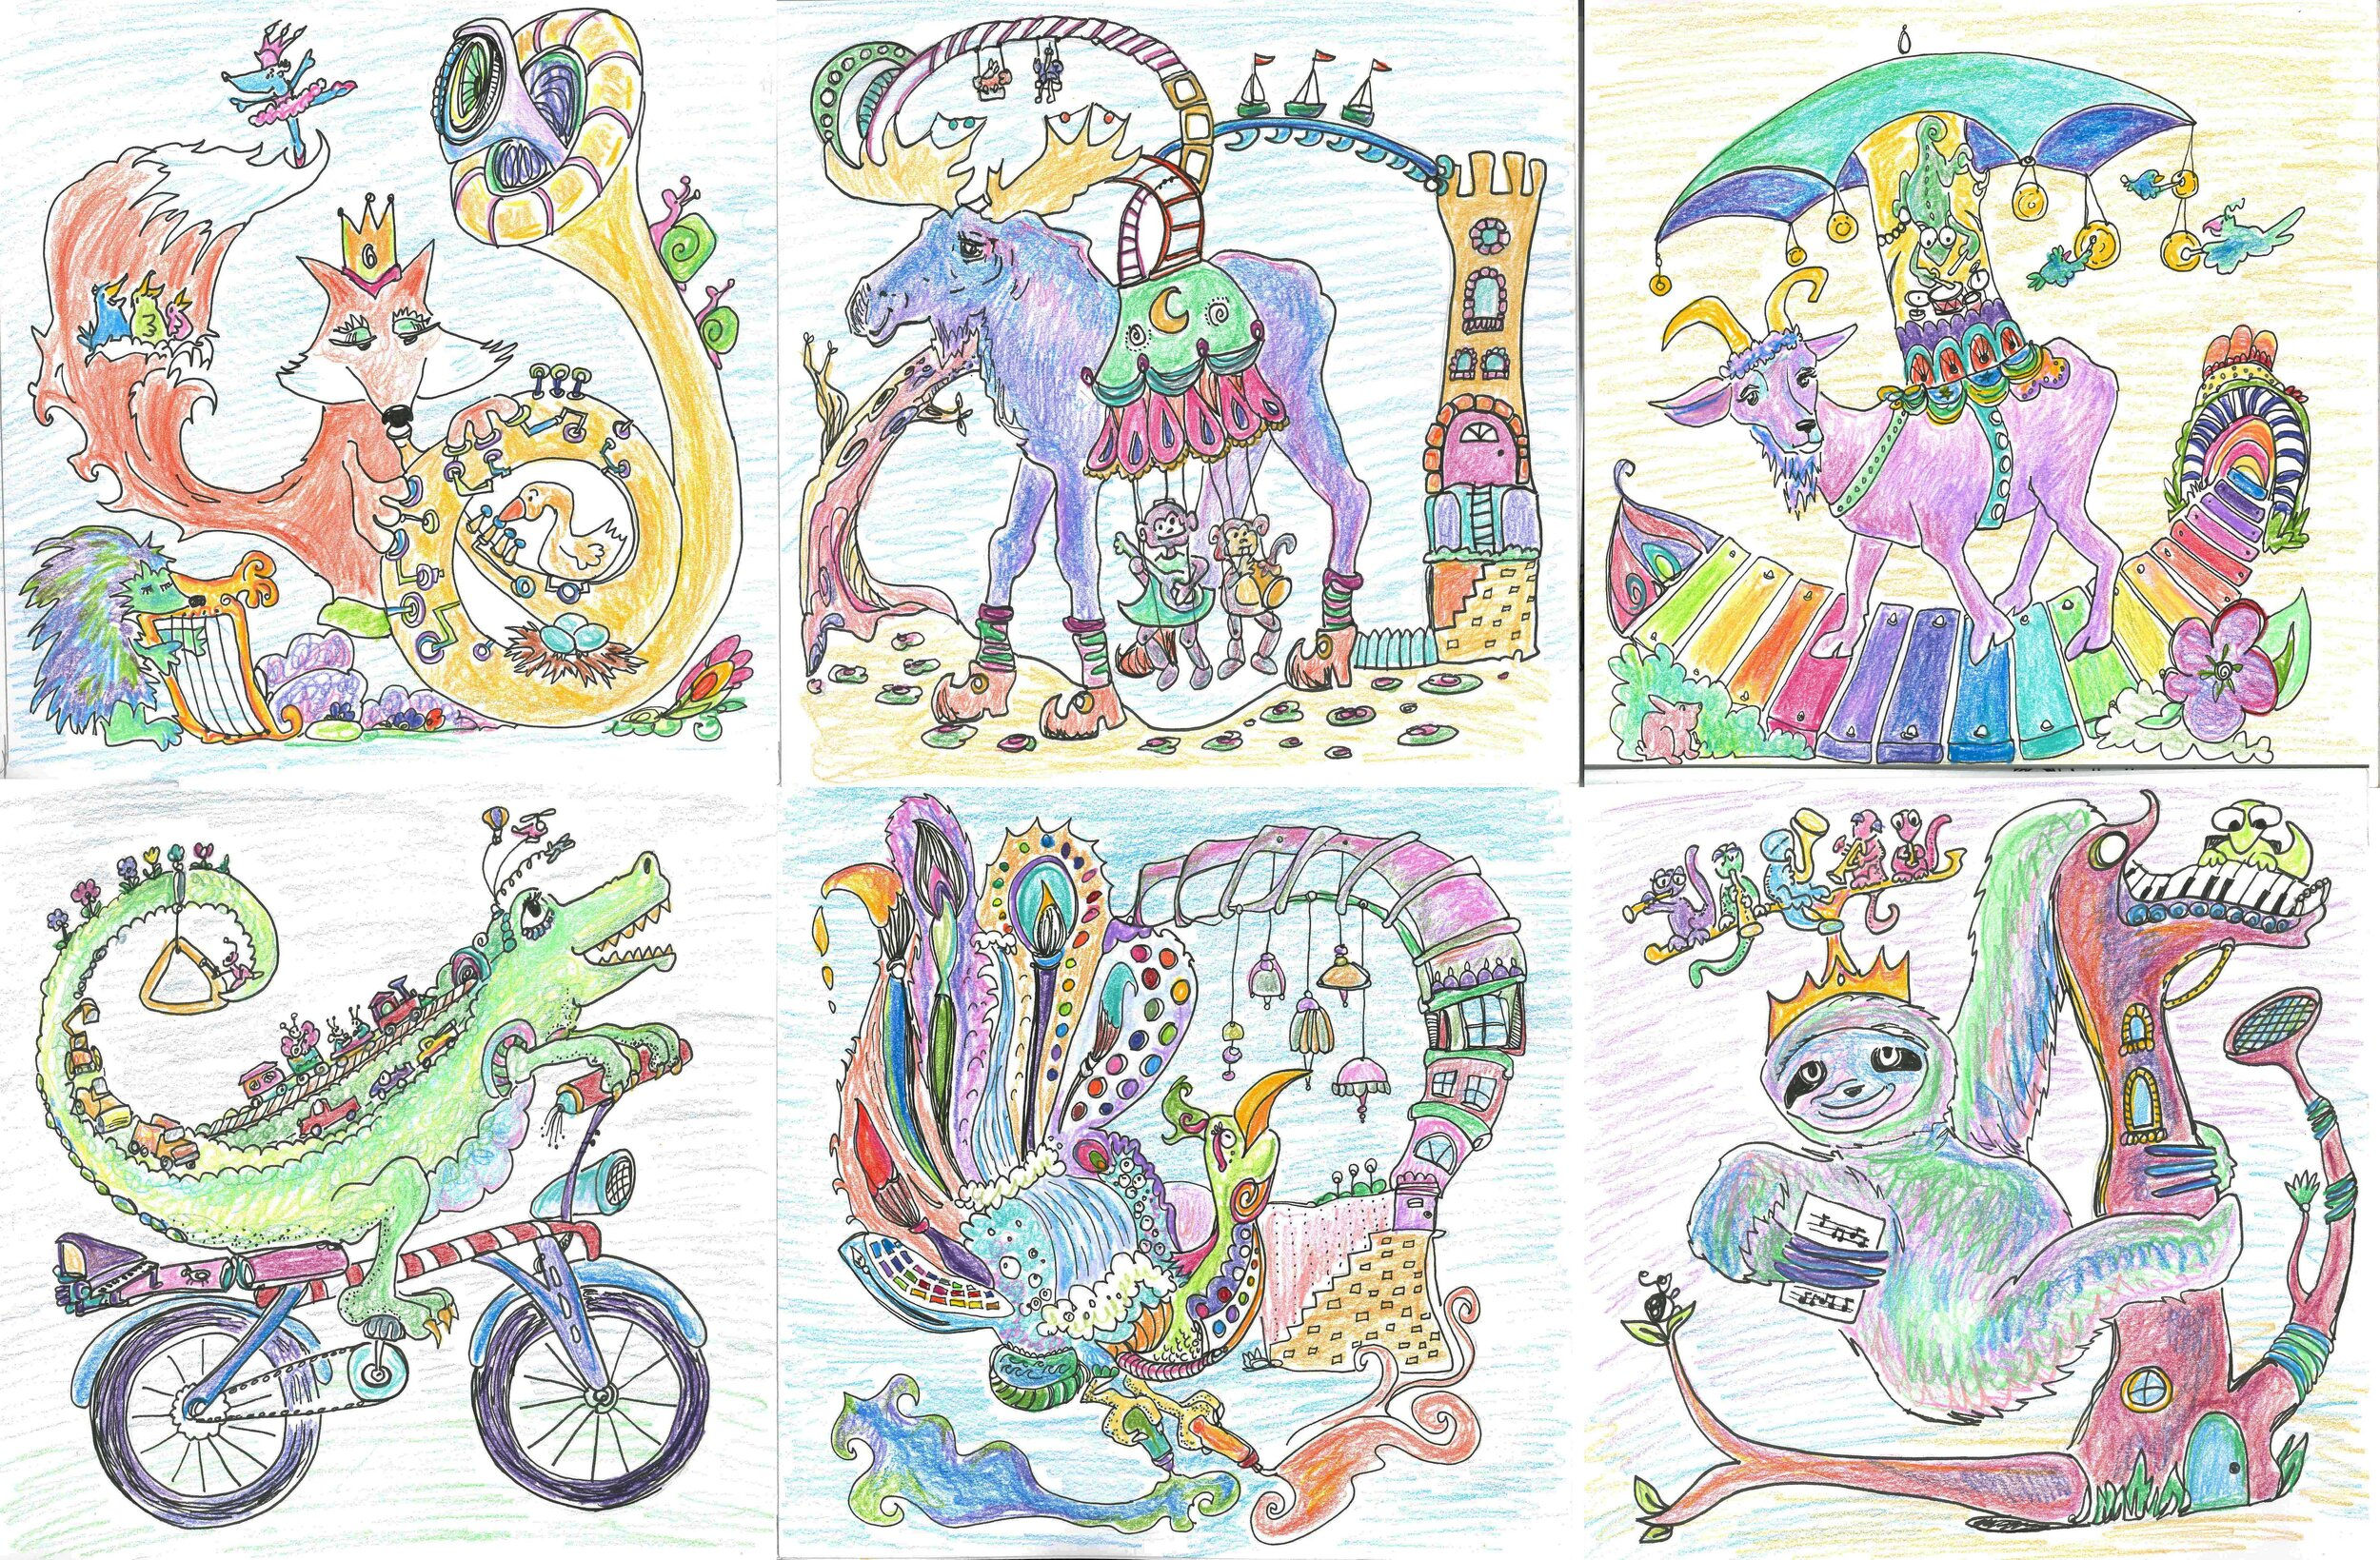 All six, original submitted sketches.